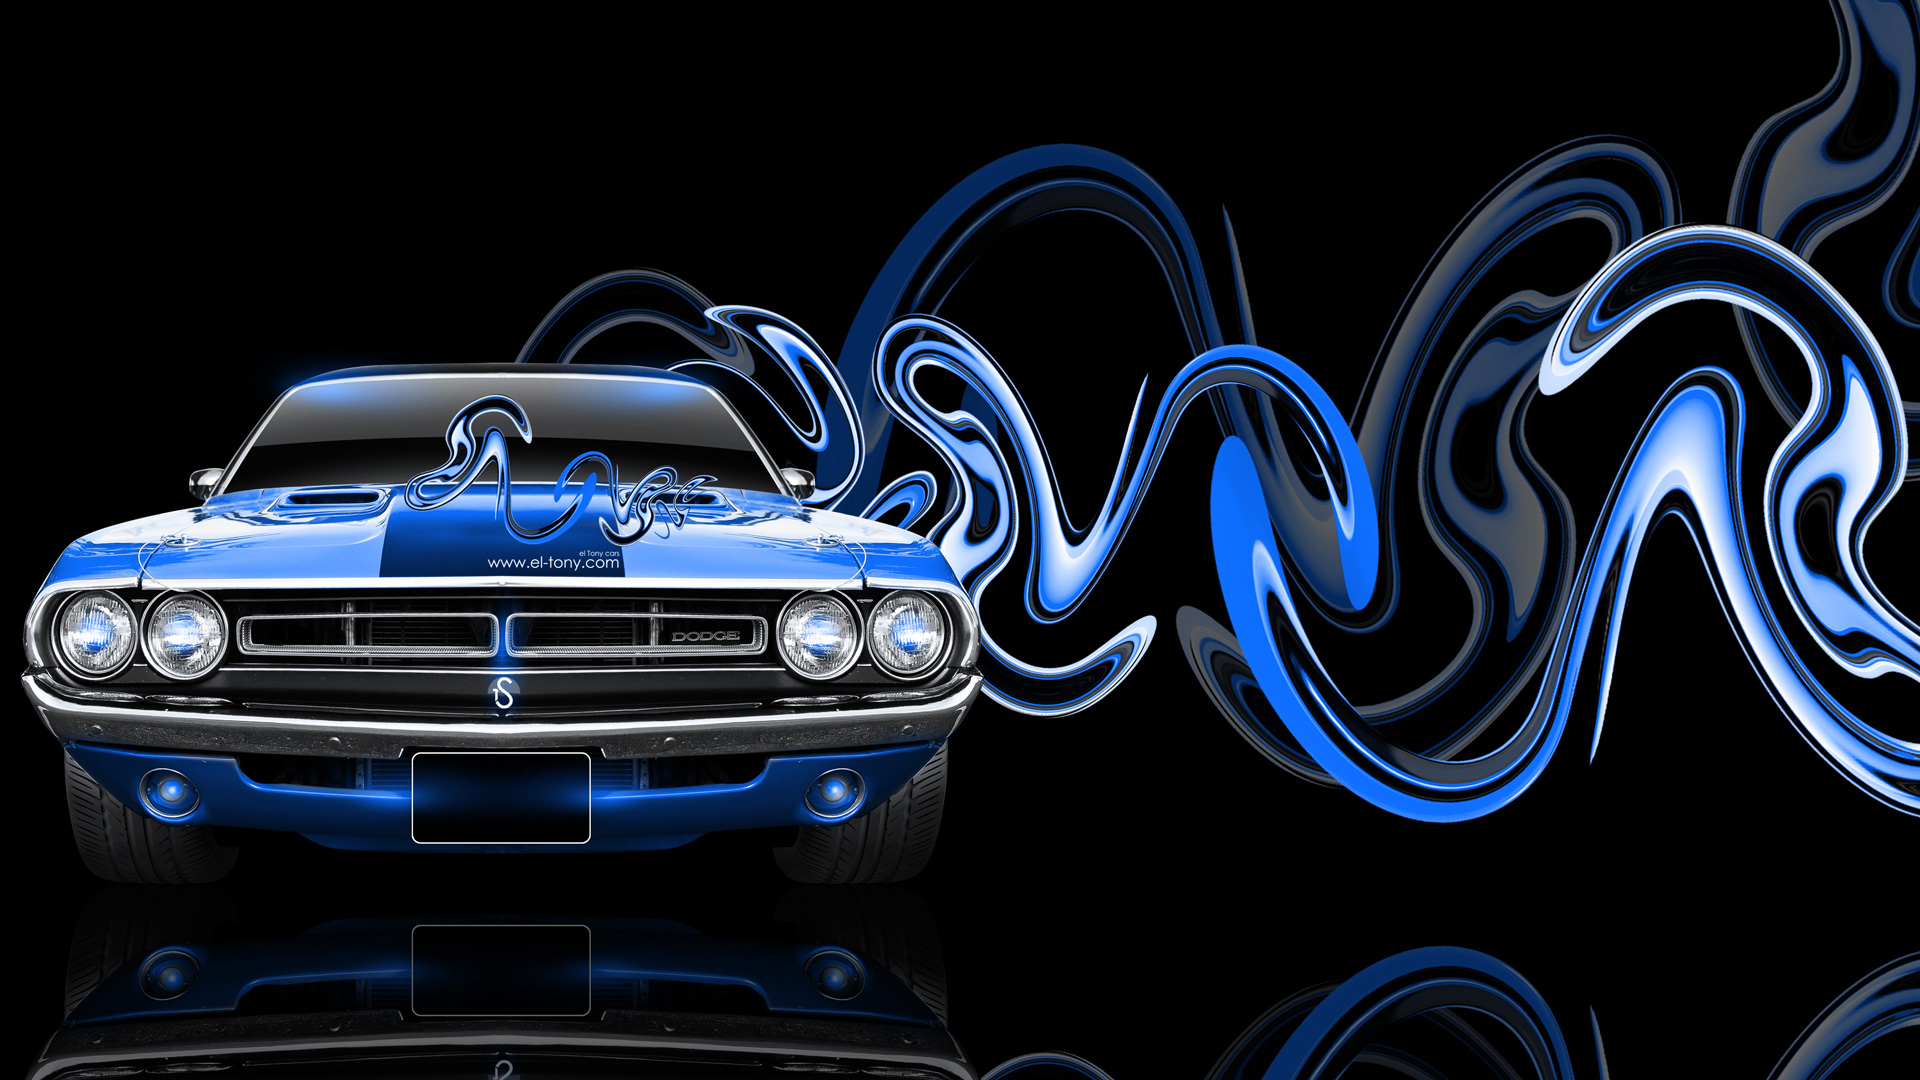 Dodge Challenger Muscle Retro Super Plastic Car 2014 El Tony